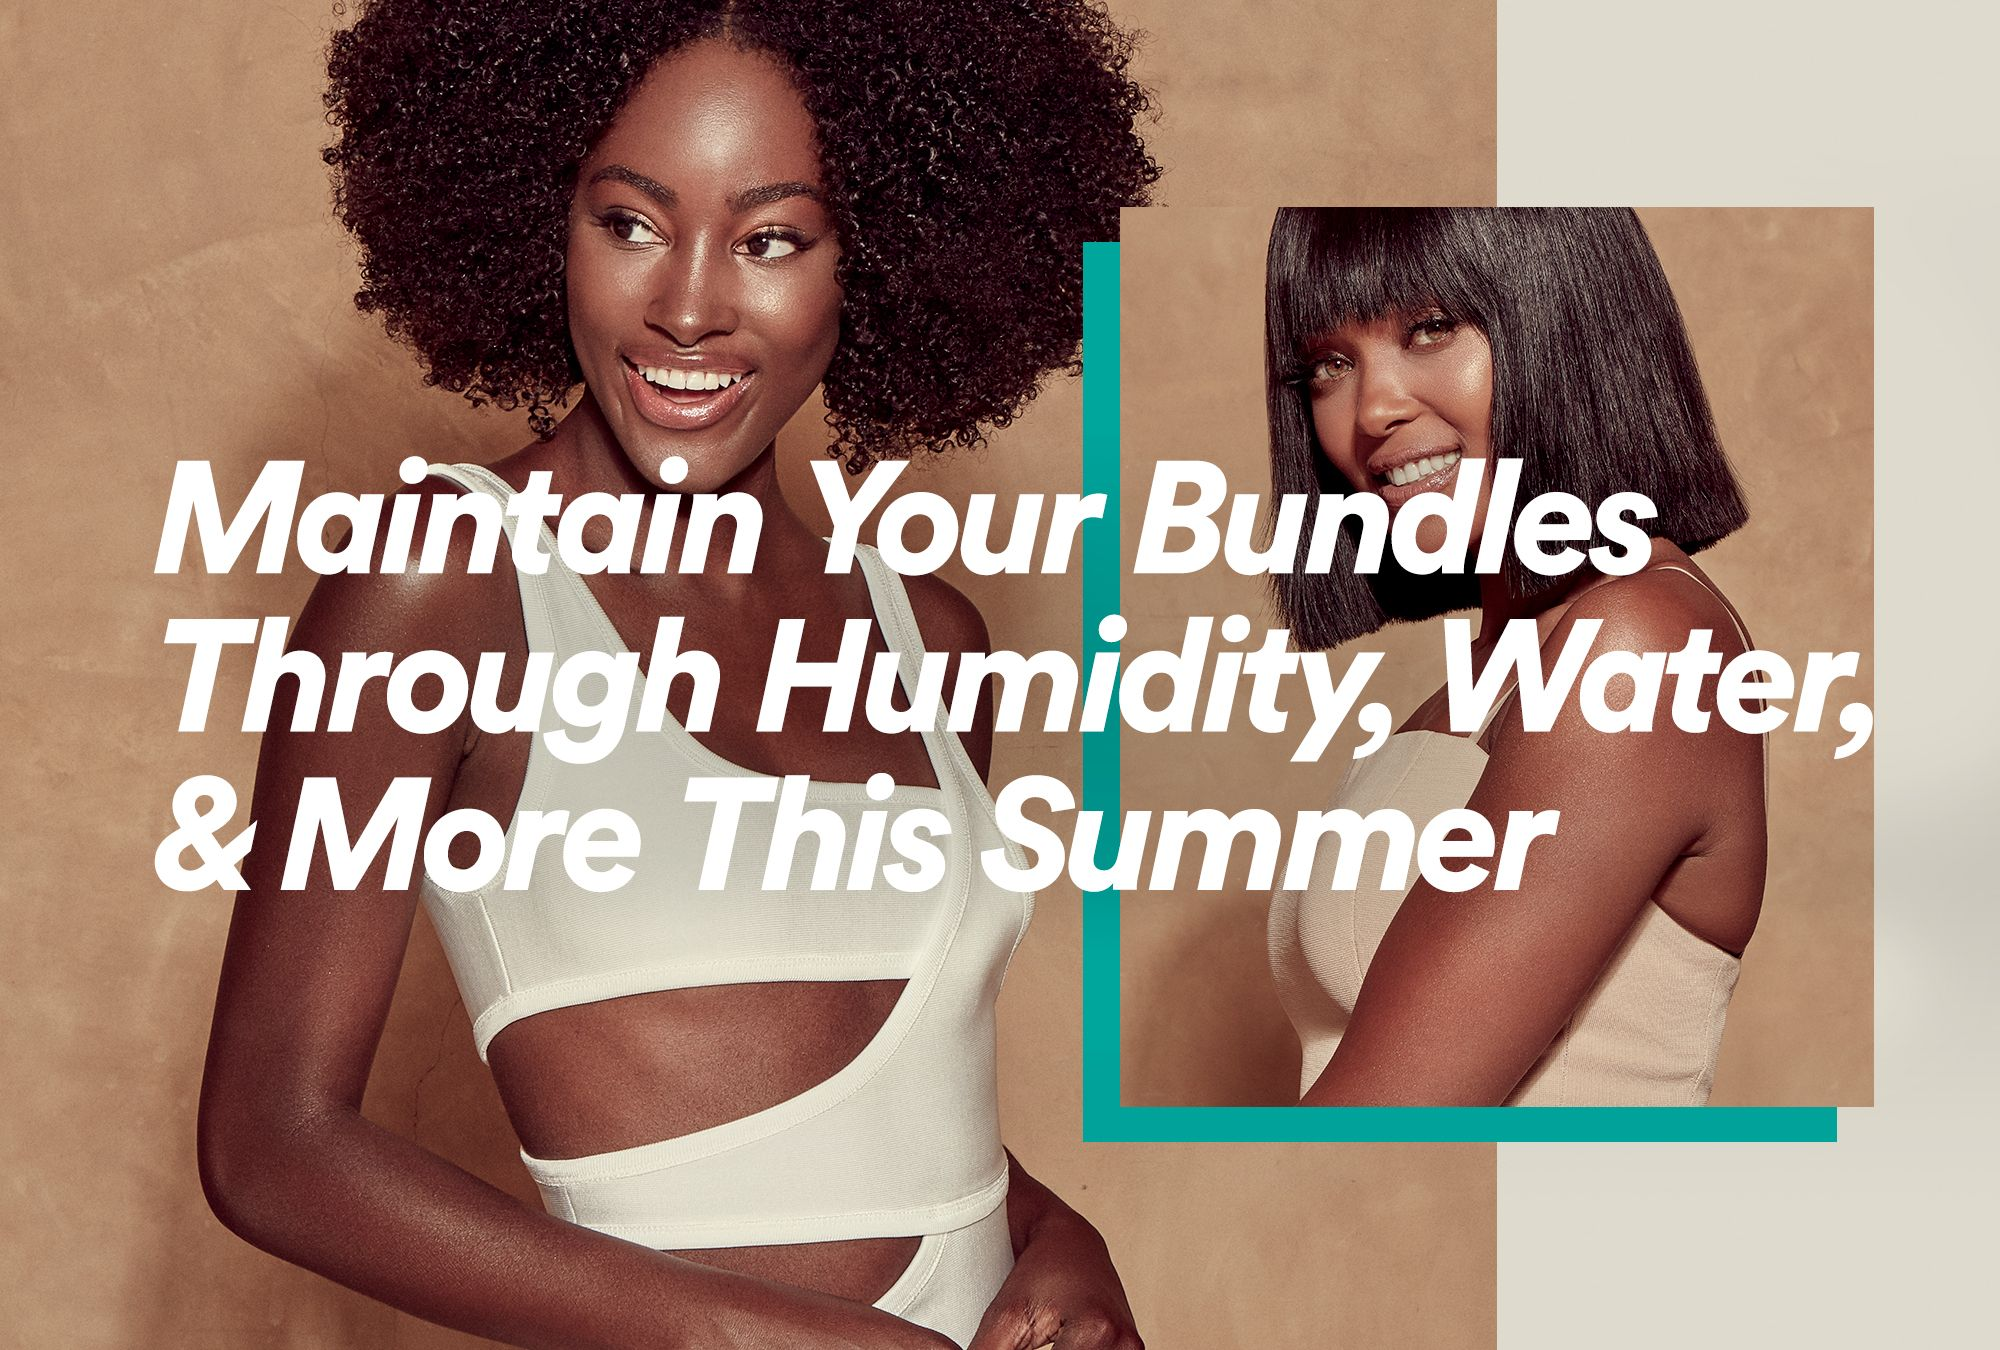 Maintain Your Bundles Through Humidity, Water, & More This Summer